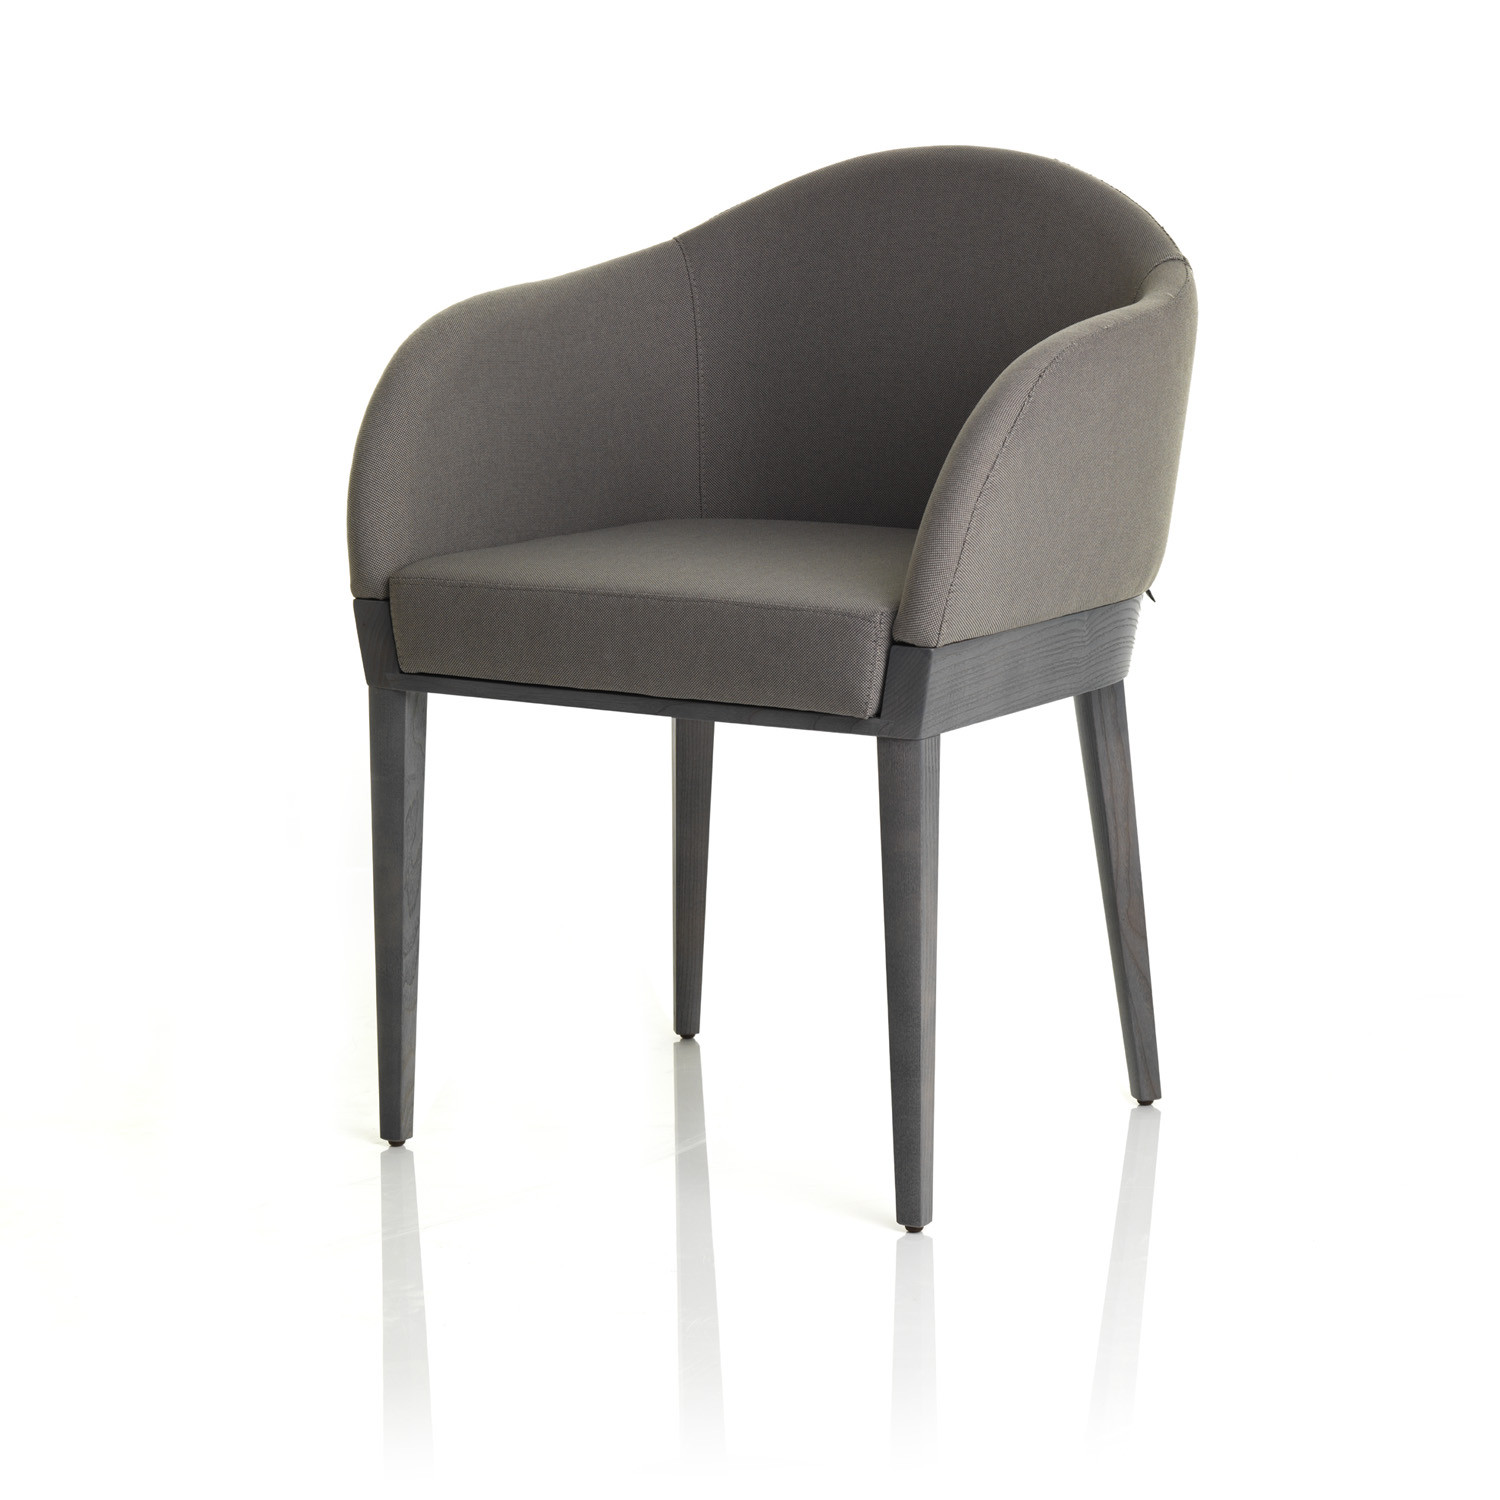 Agata Reception Armchair